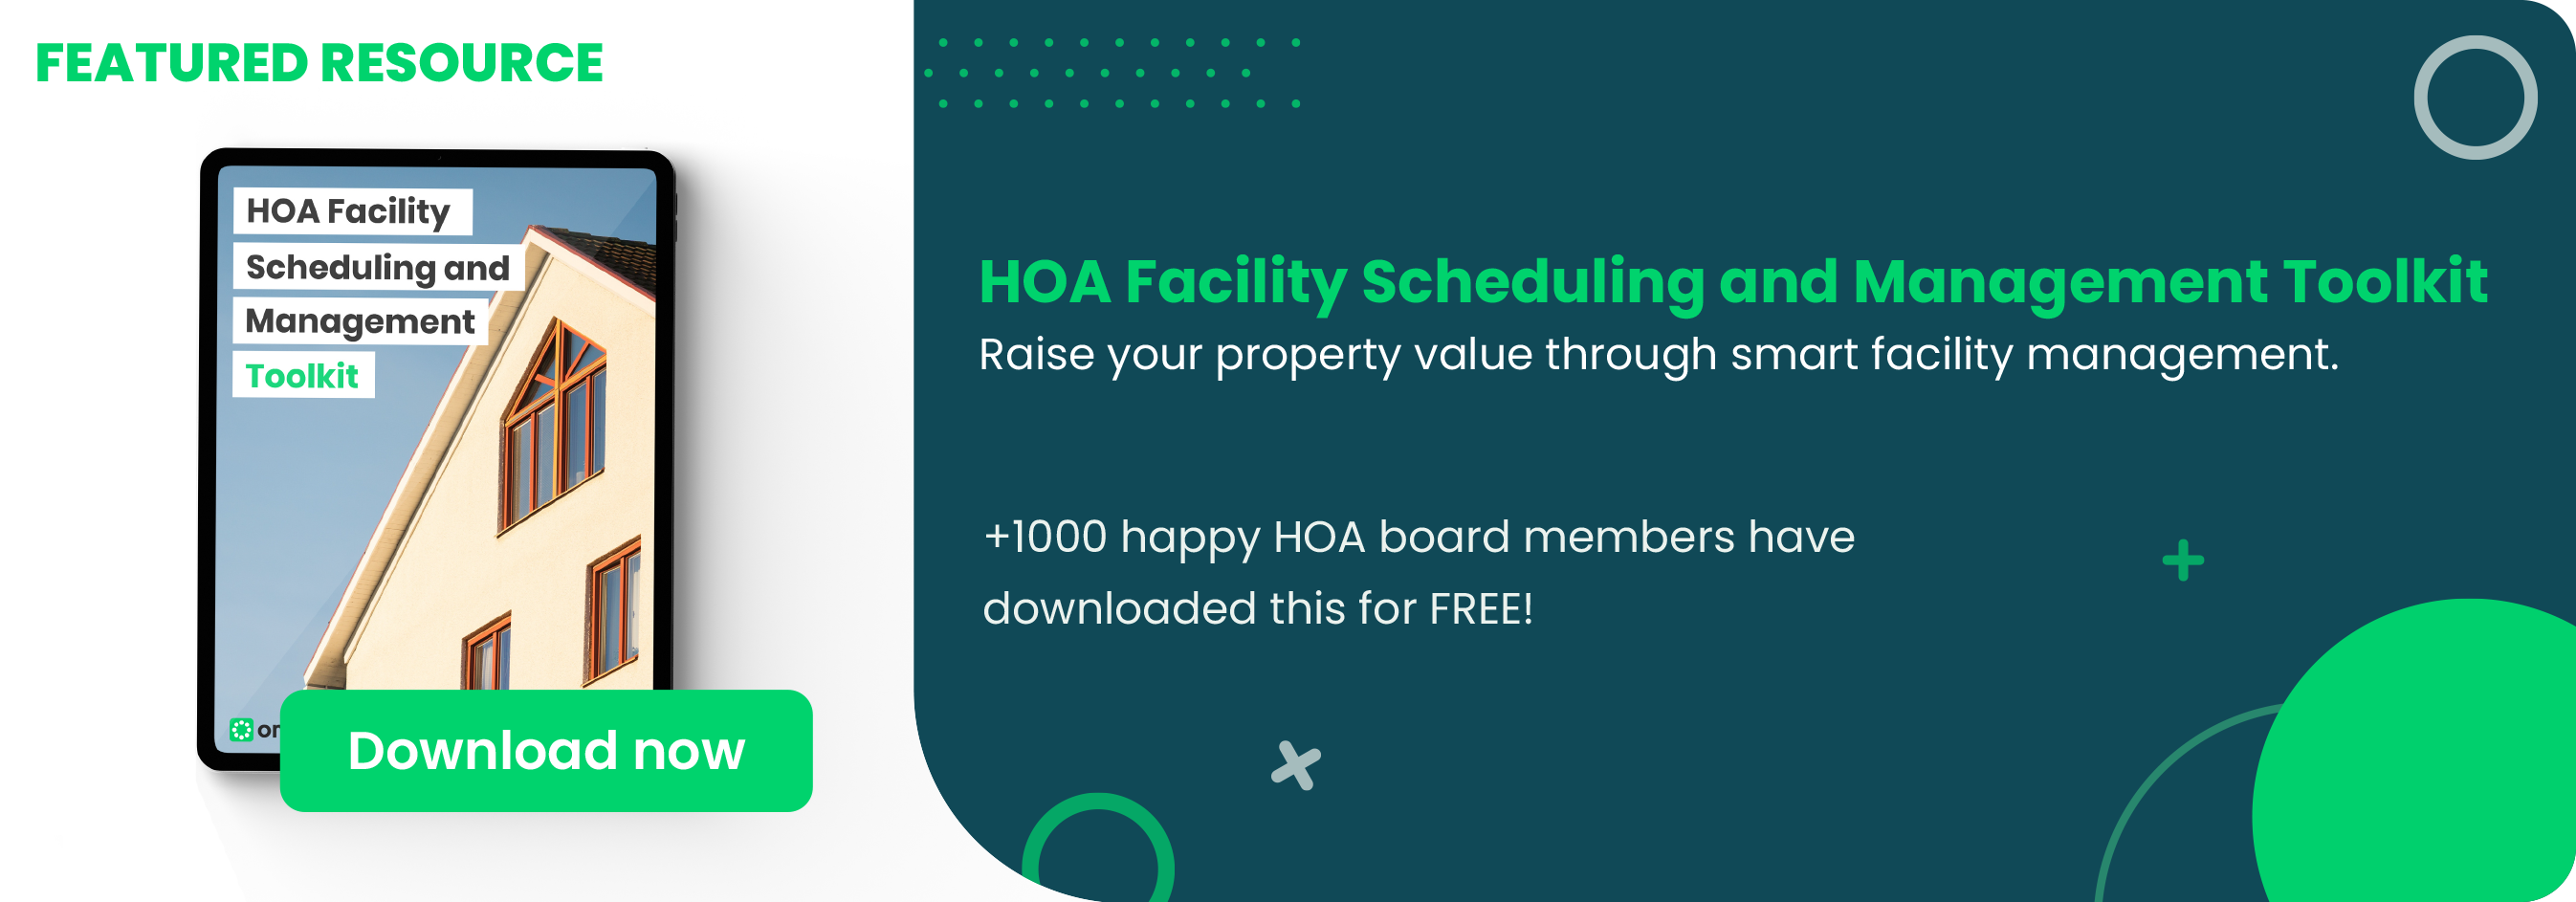 HOA Facility Scheduling and Management Toolkit